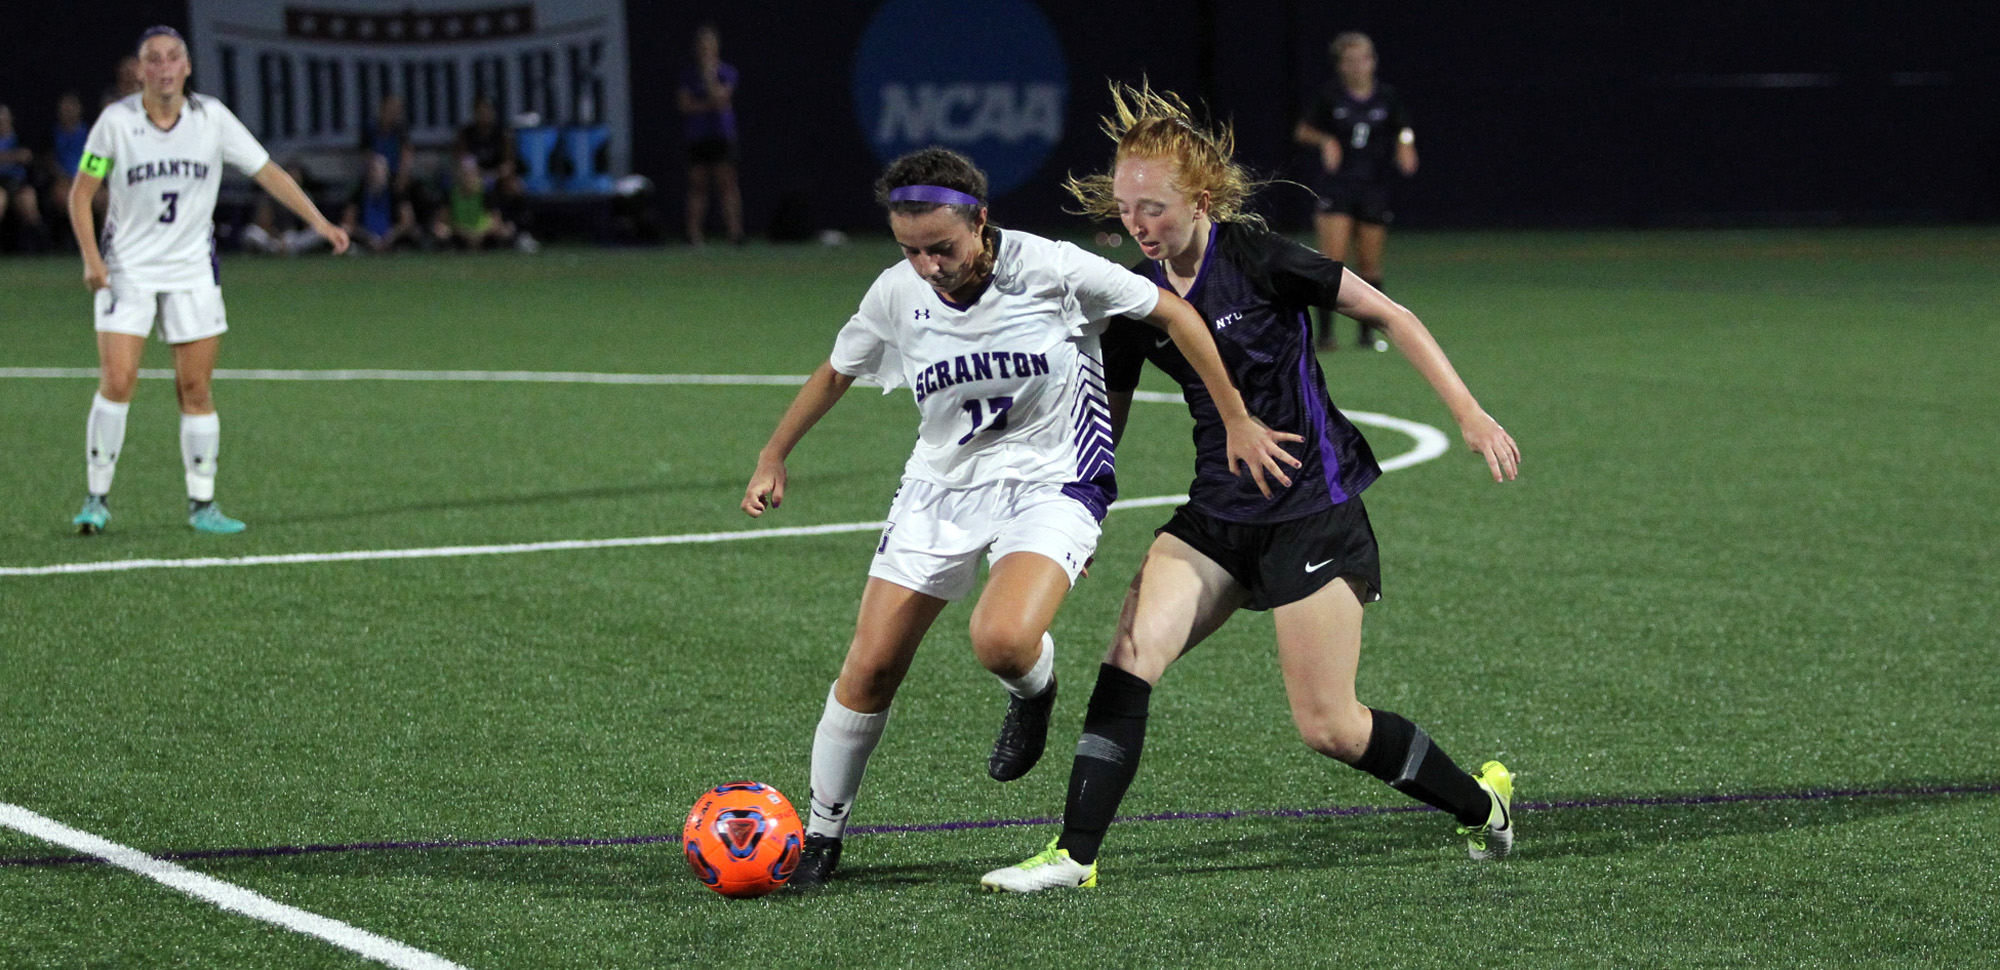 Sophomore Callie Deola picked the right time to score her first career goal Wednesday night at NYU, as her tally in the 68th minute was the difference in a 2-1 win for the women's soccer team.